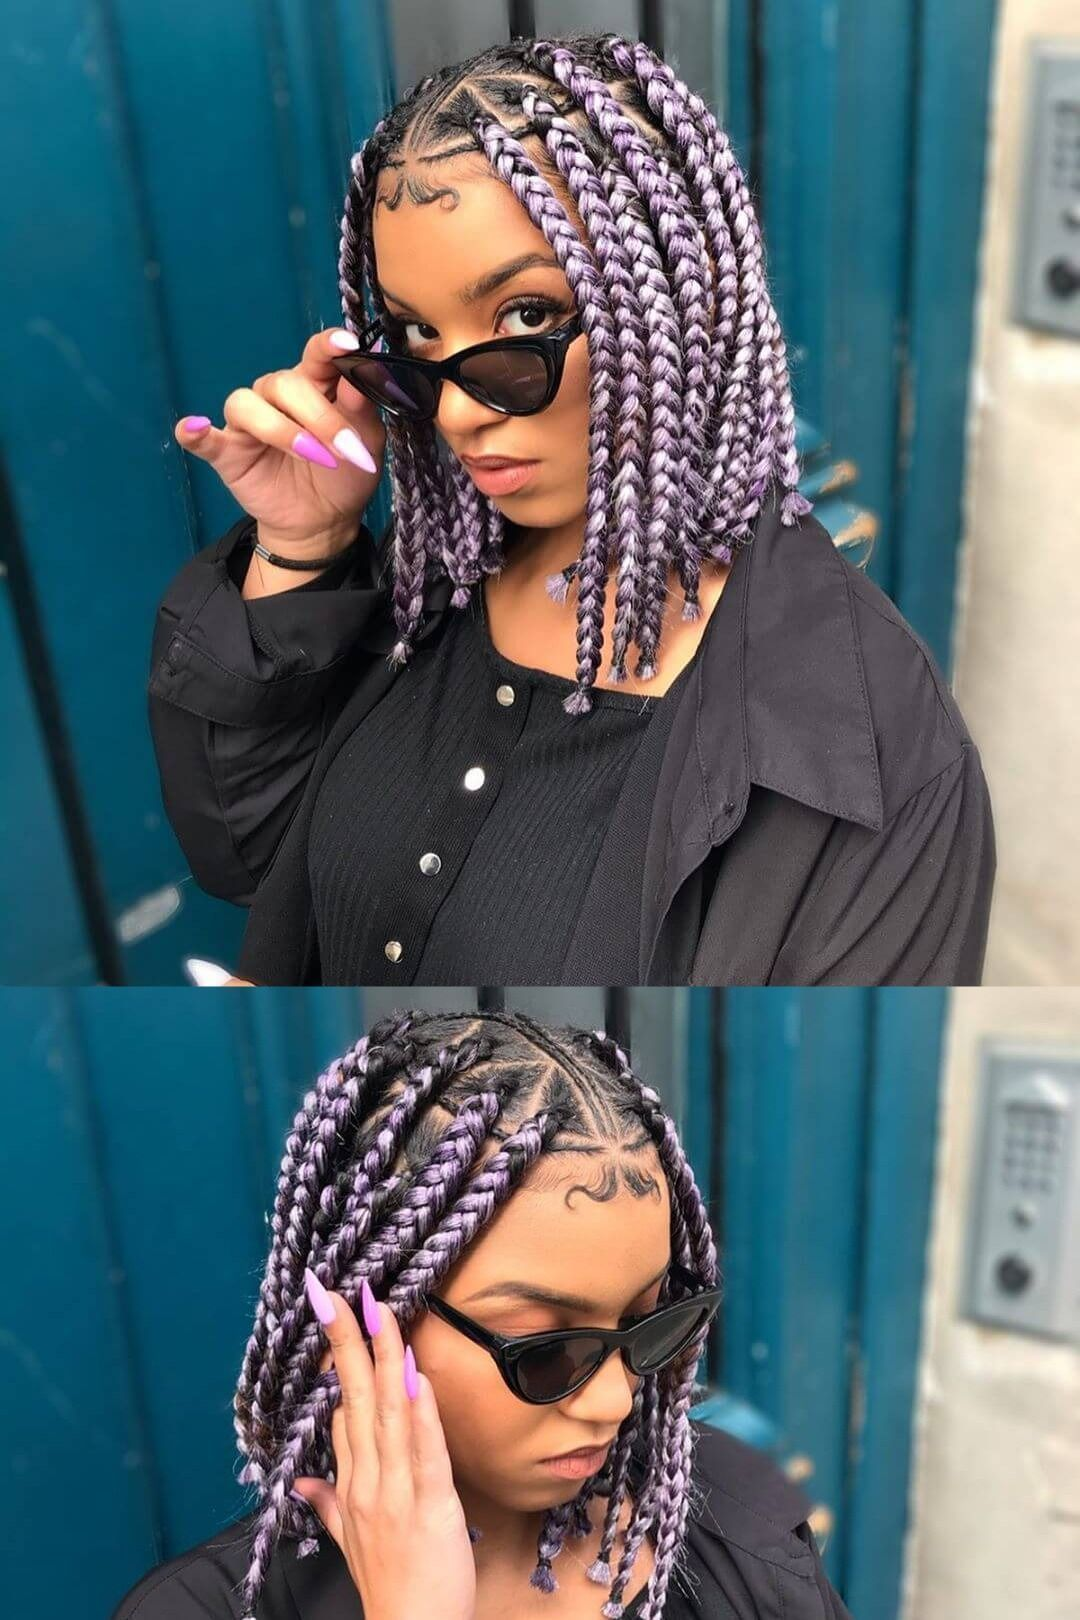 we have found +25 fulani braided hairstyle ponytails for black hair to try on the weekend for your natural black hair. # fulani Braids ponytail +25 Fulani braided hairstyle ponytails For Black Hair for the weekend # fulani Braids ponytail